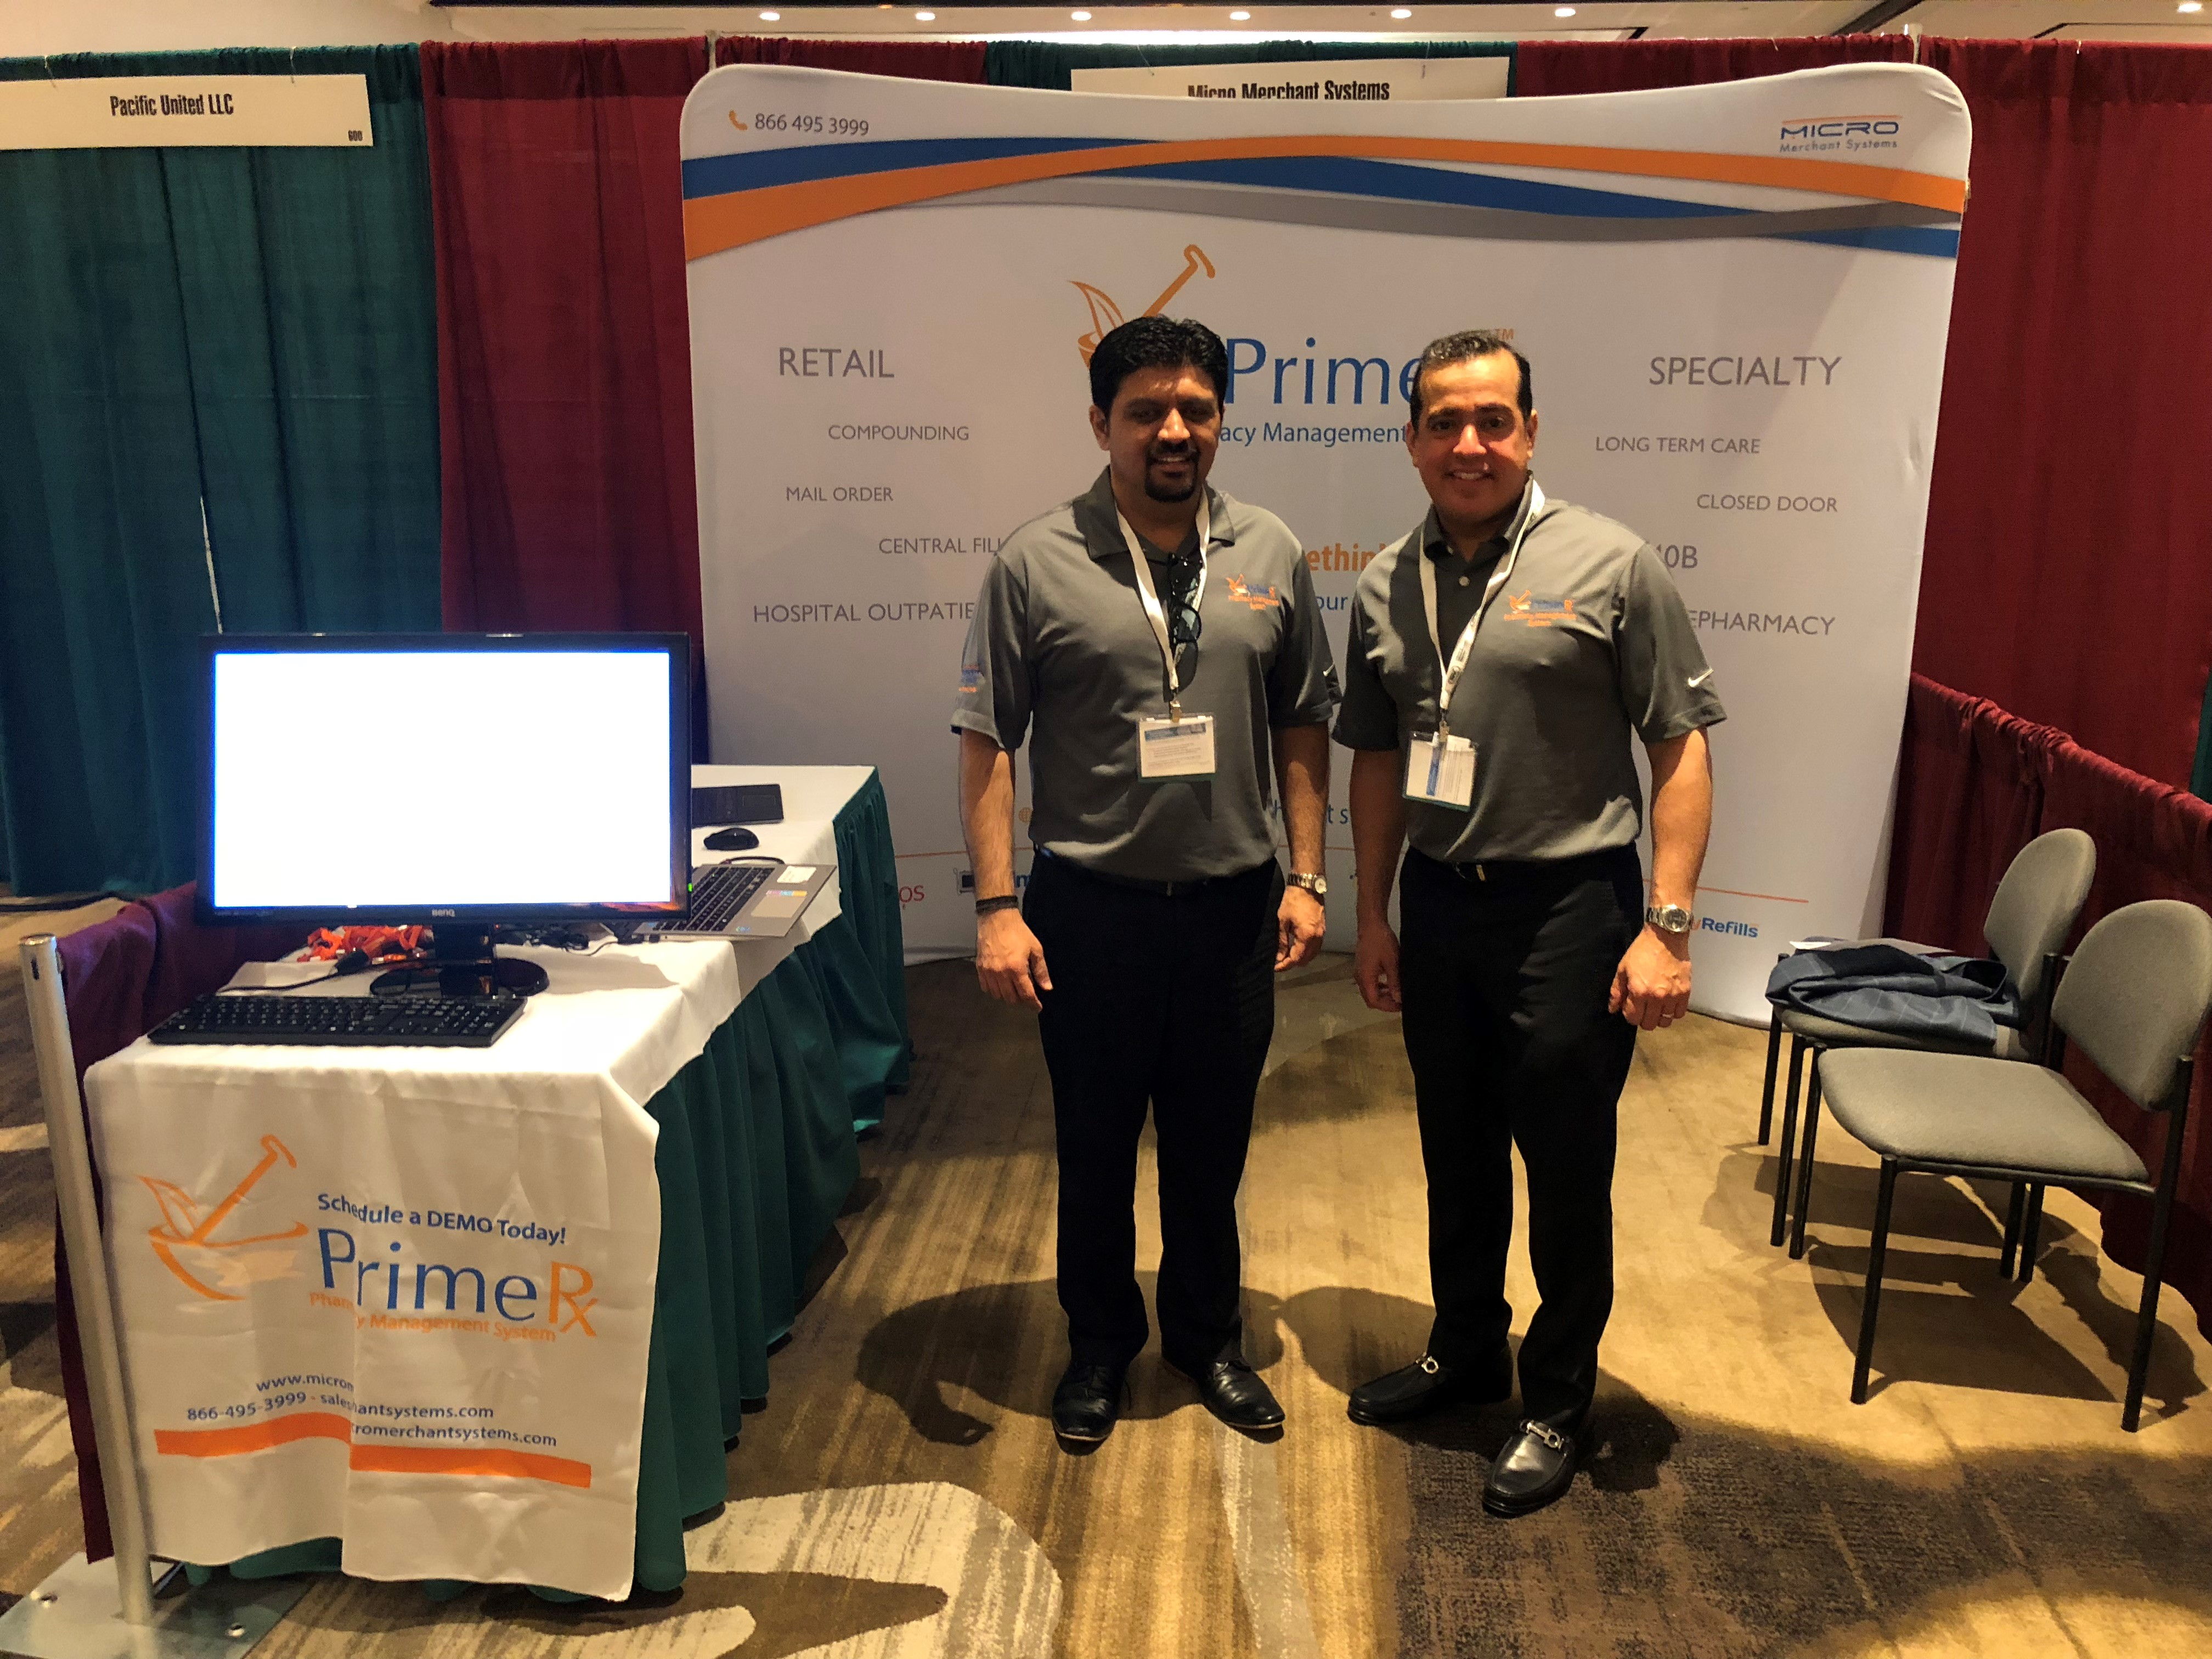 EPIC Pharmacies Stockholders Meeting and Trade Show